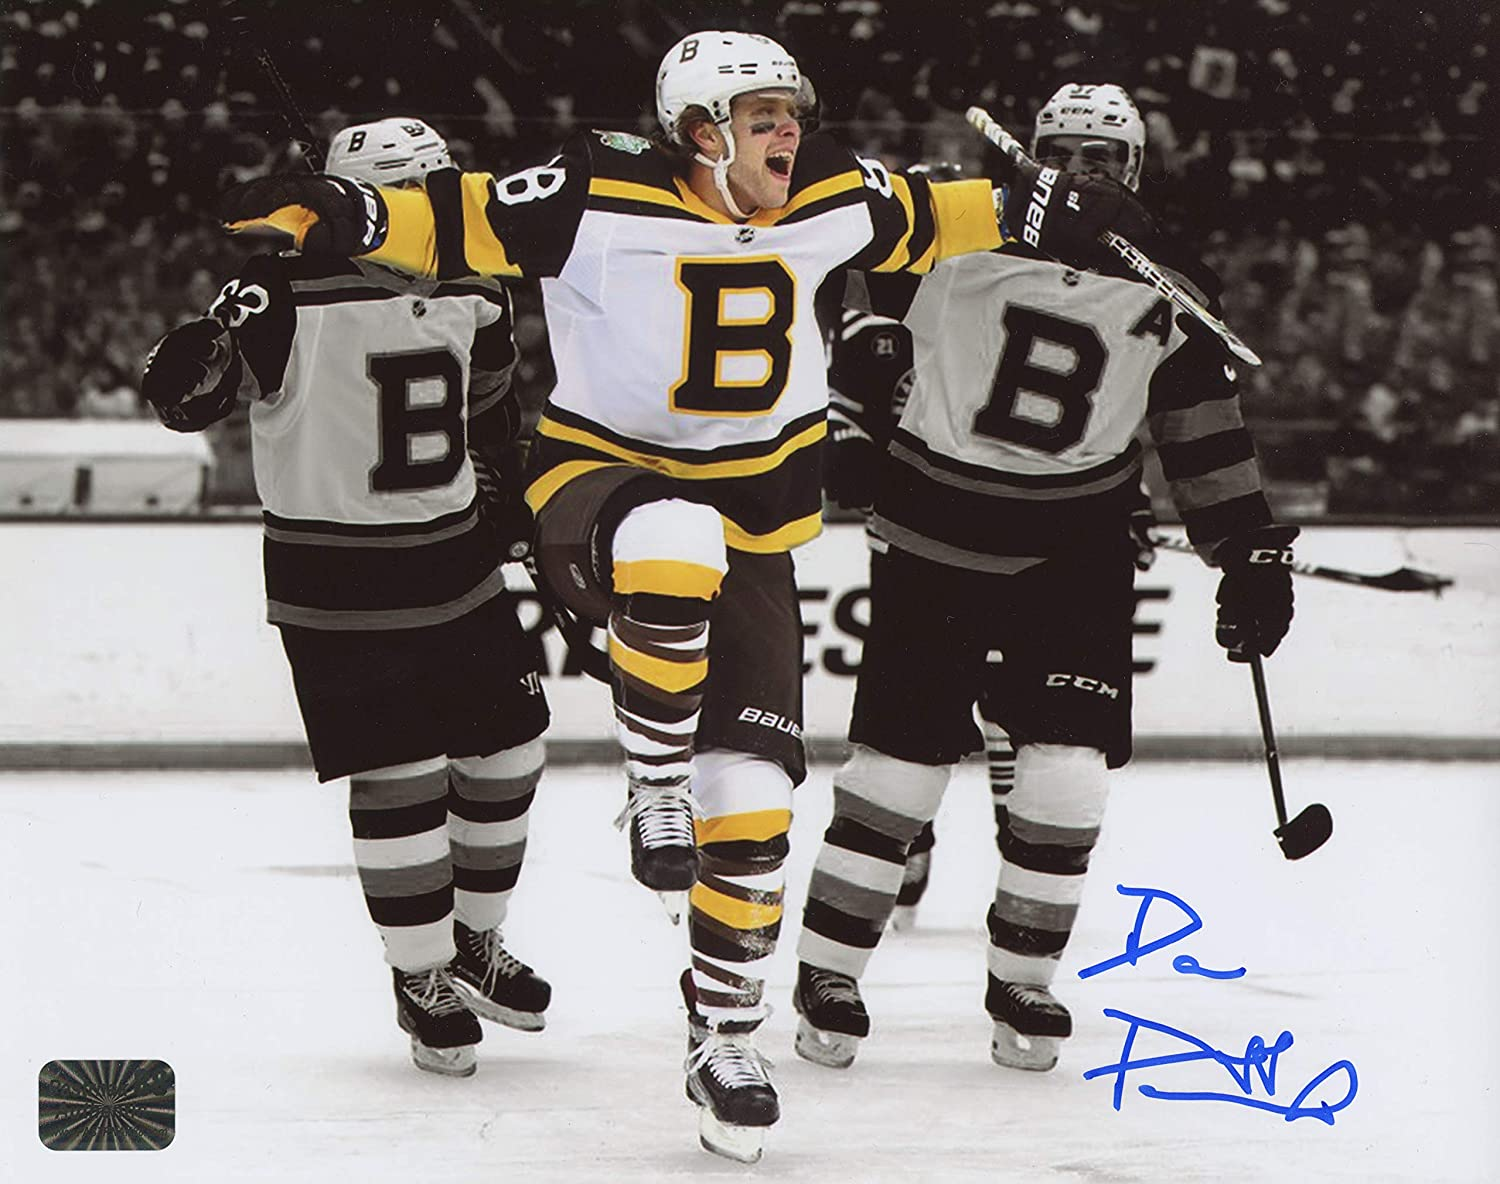 newest e107b 04635 David Pastrnak Boston Bruins Signed Autographed 2019 Winter ...